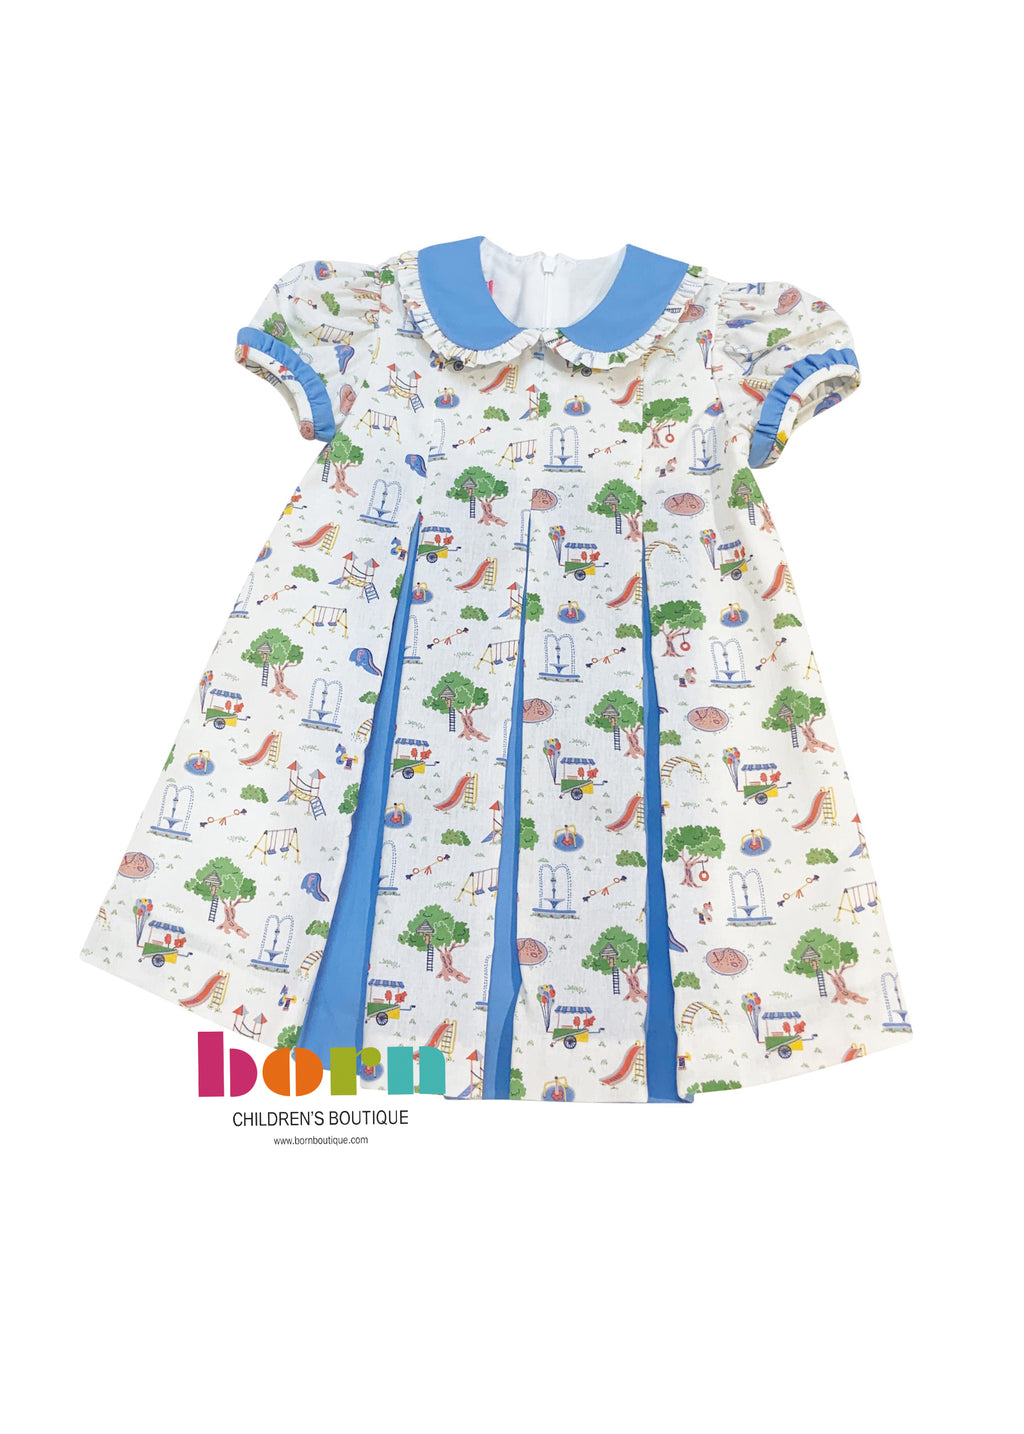 Dress W/Contrasting Pleats - Playground Print - Born Childrens Boutique